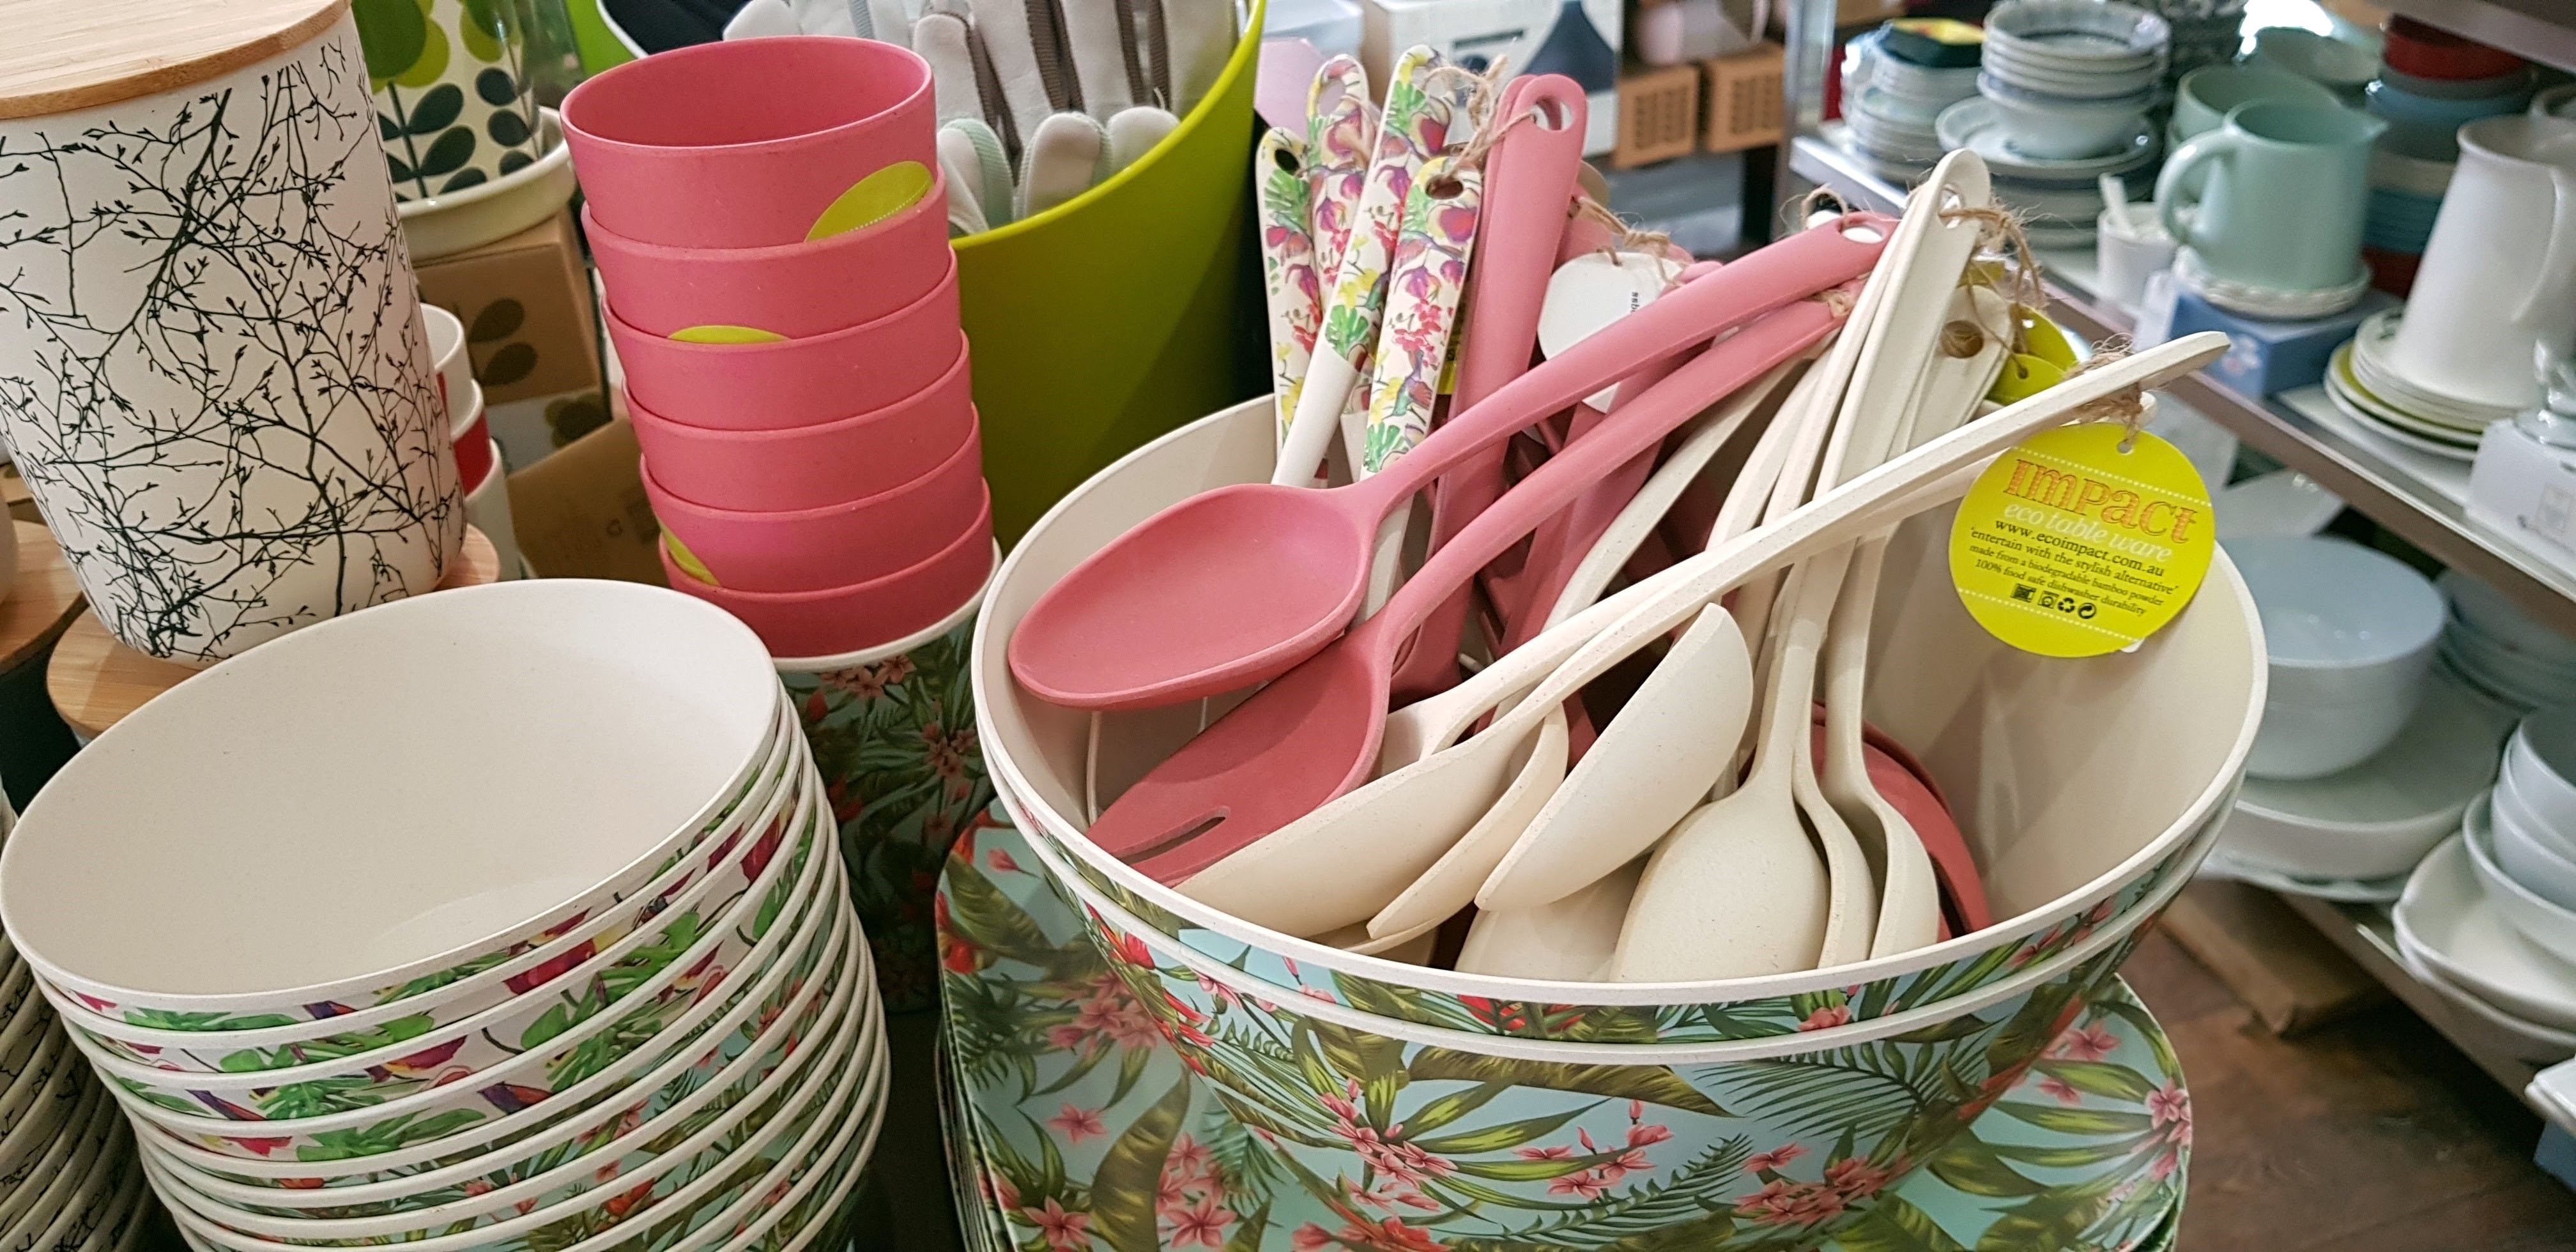 Kitchenware, Homewares and Giftware Store North Shore